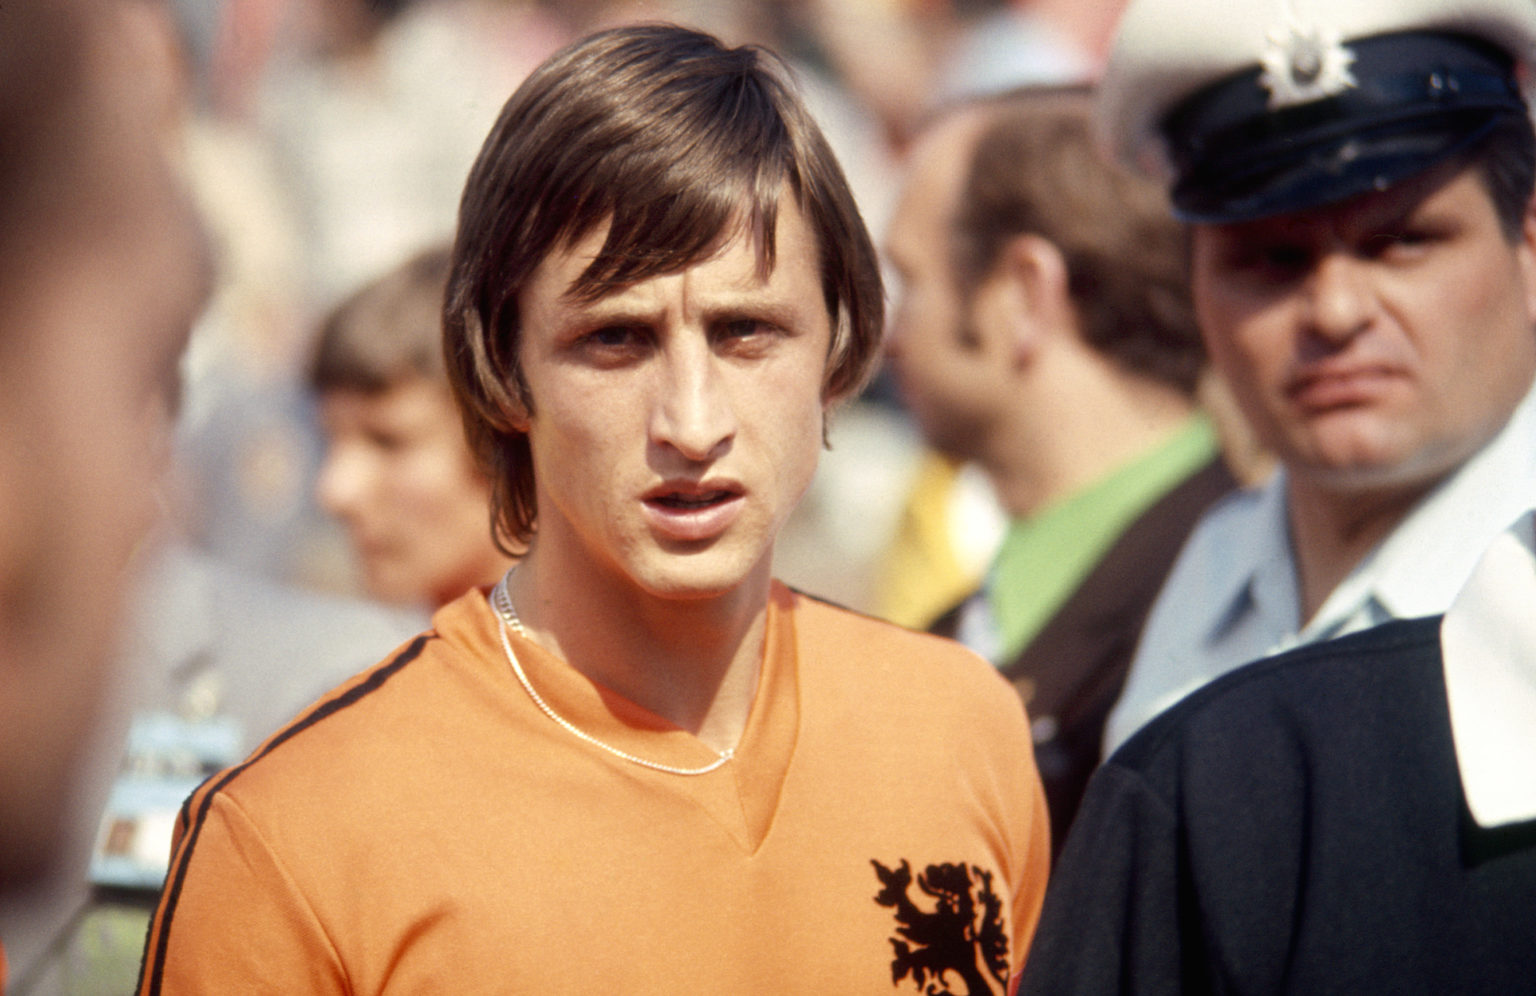 Dutch footballer Johan Cruyff at the World Cup in West Germany in 1974.